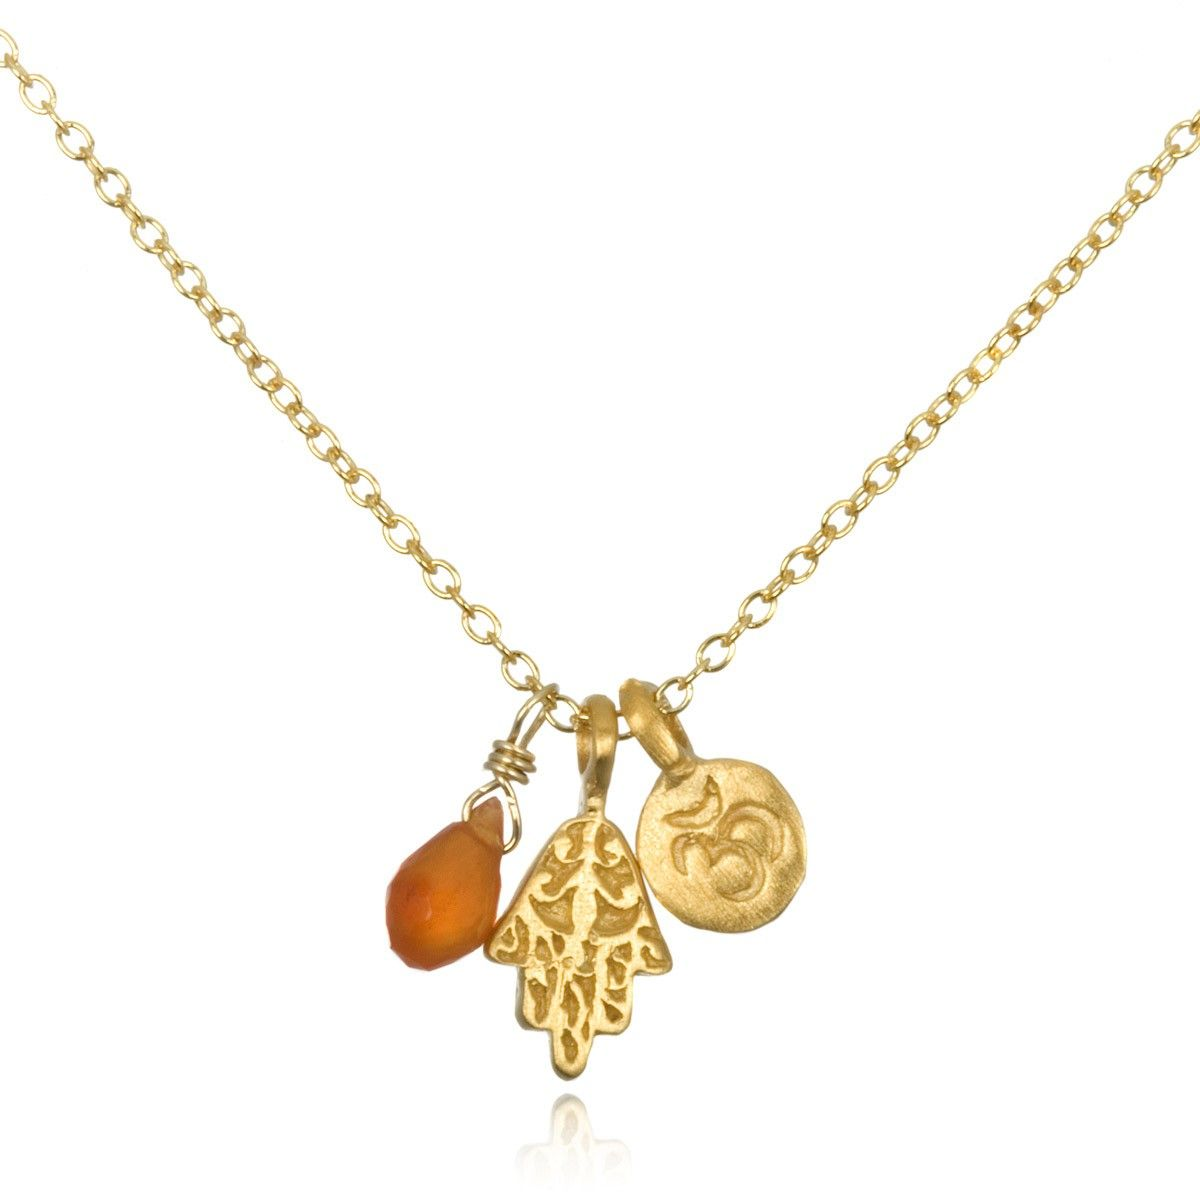 Hamsa Amp Om Charm Necklace With Carnelian In Gold Satya